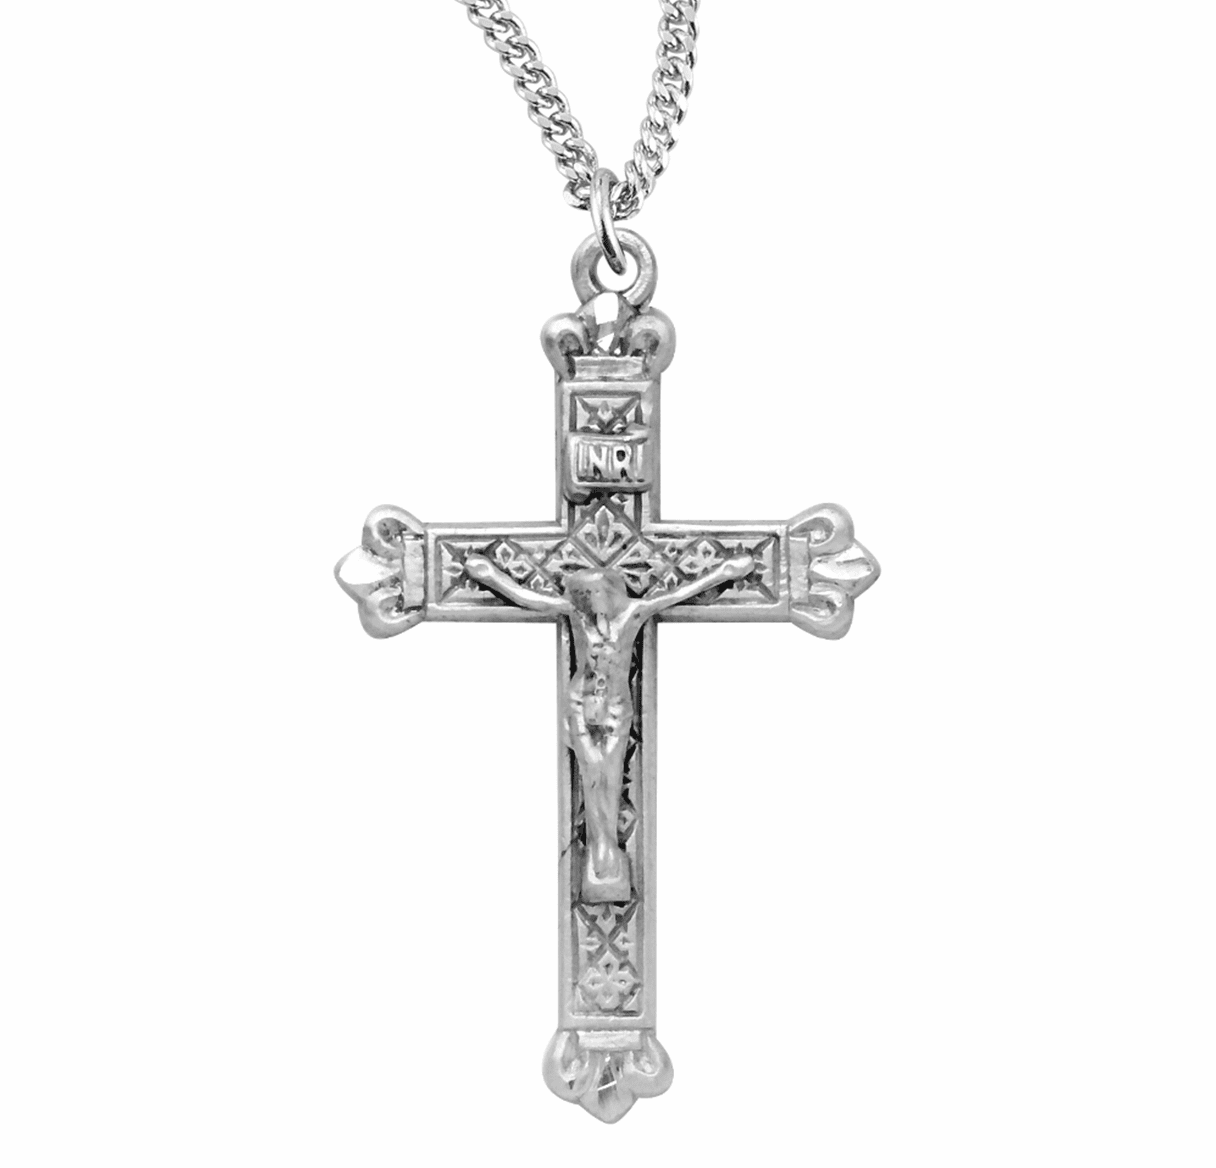 HMH Religious Small Decorative Budded Tip Sterling Crucifix Necklace